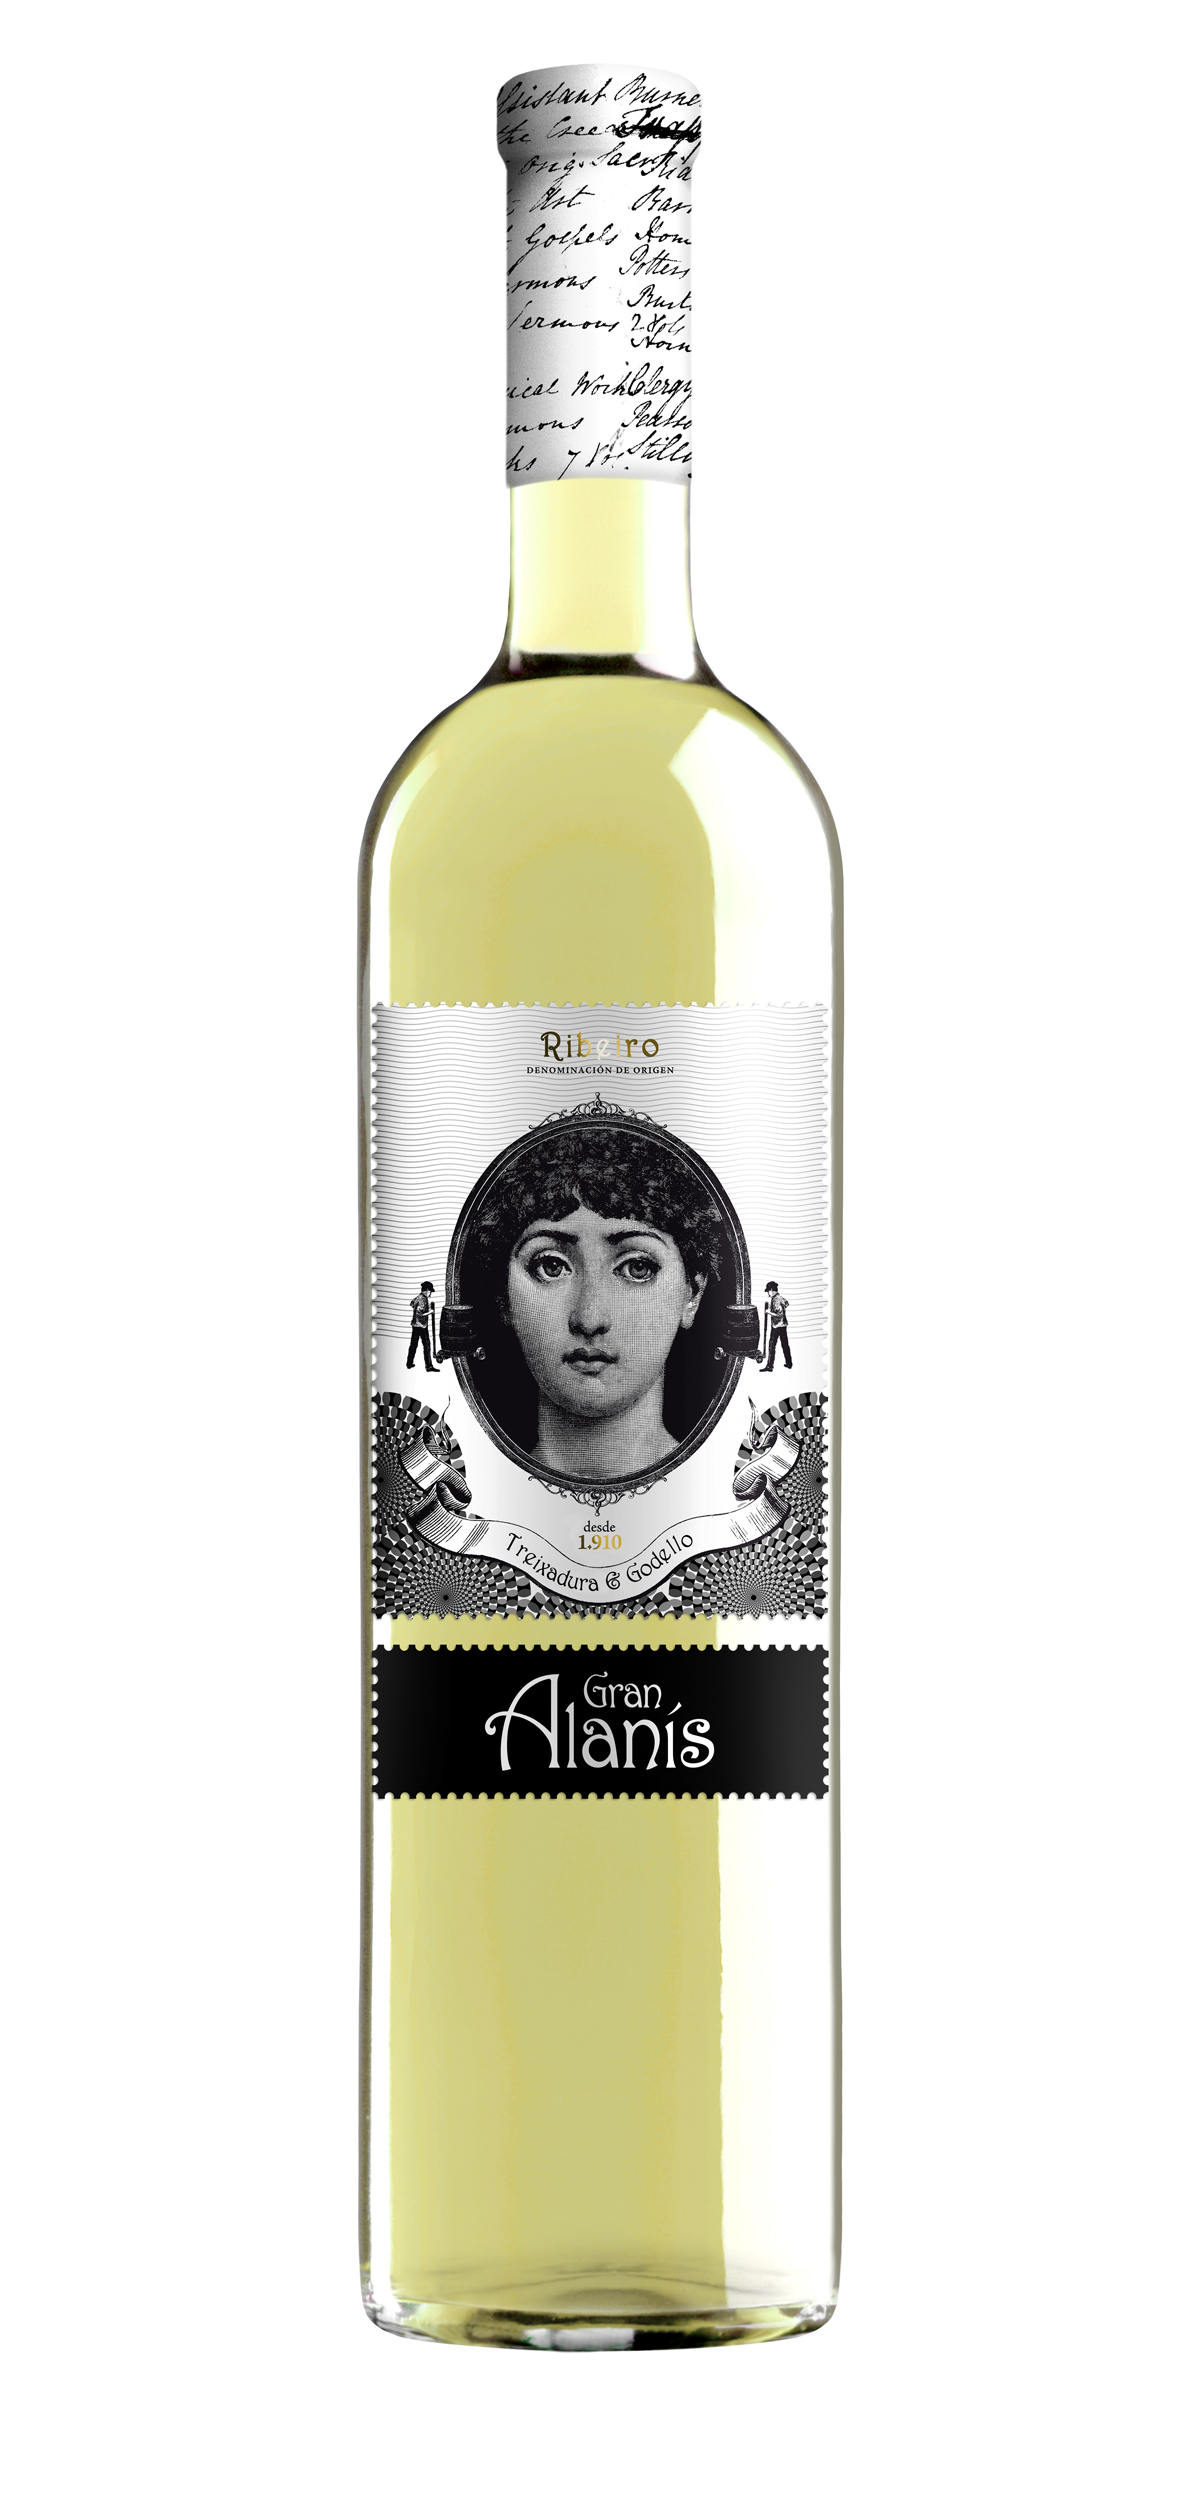 Gran Alanis wine bottle design